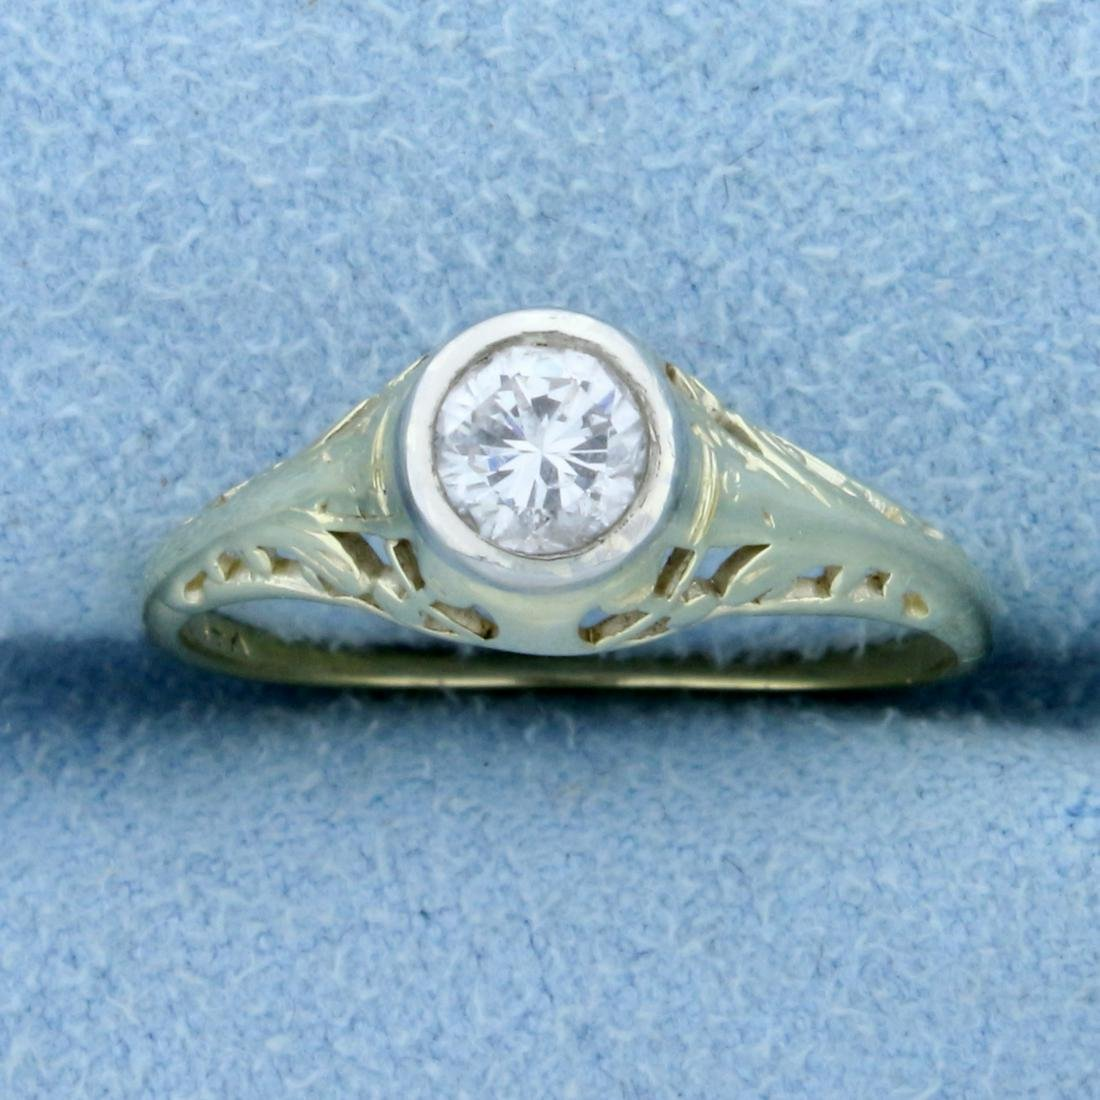 Filigree Edwardian Solitaire .4ct Diamond Ring in 14K